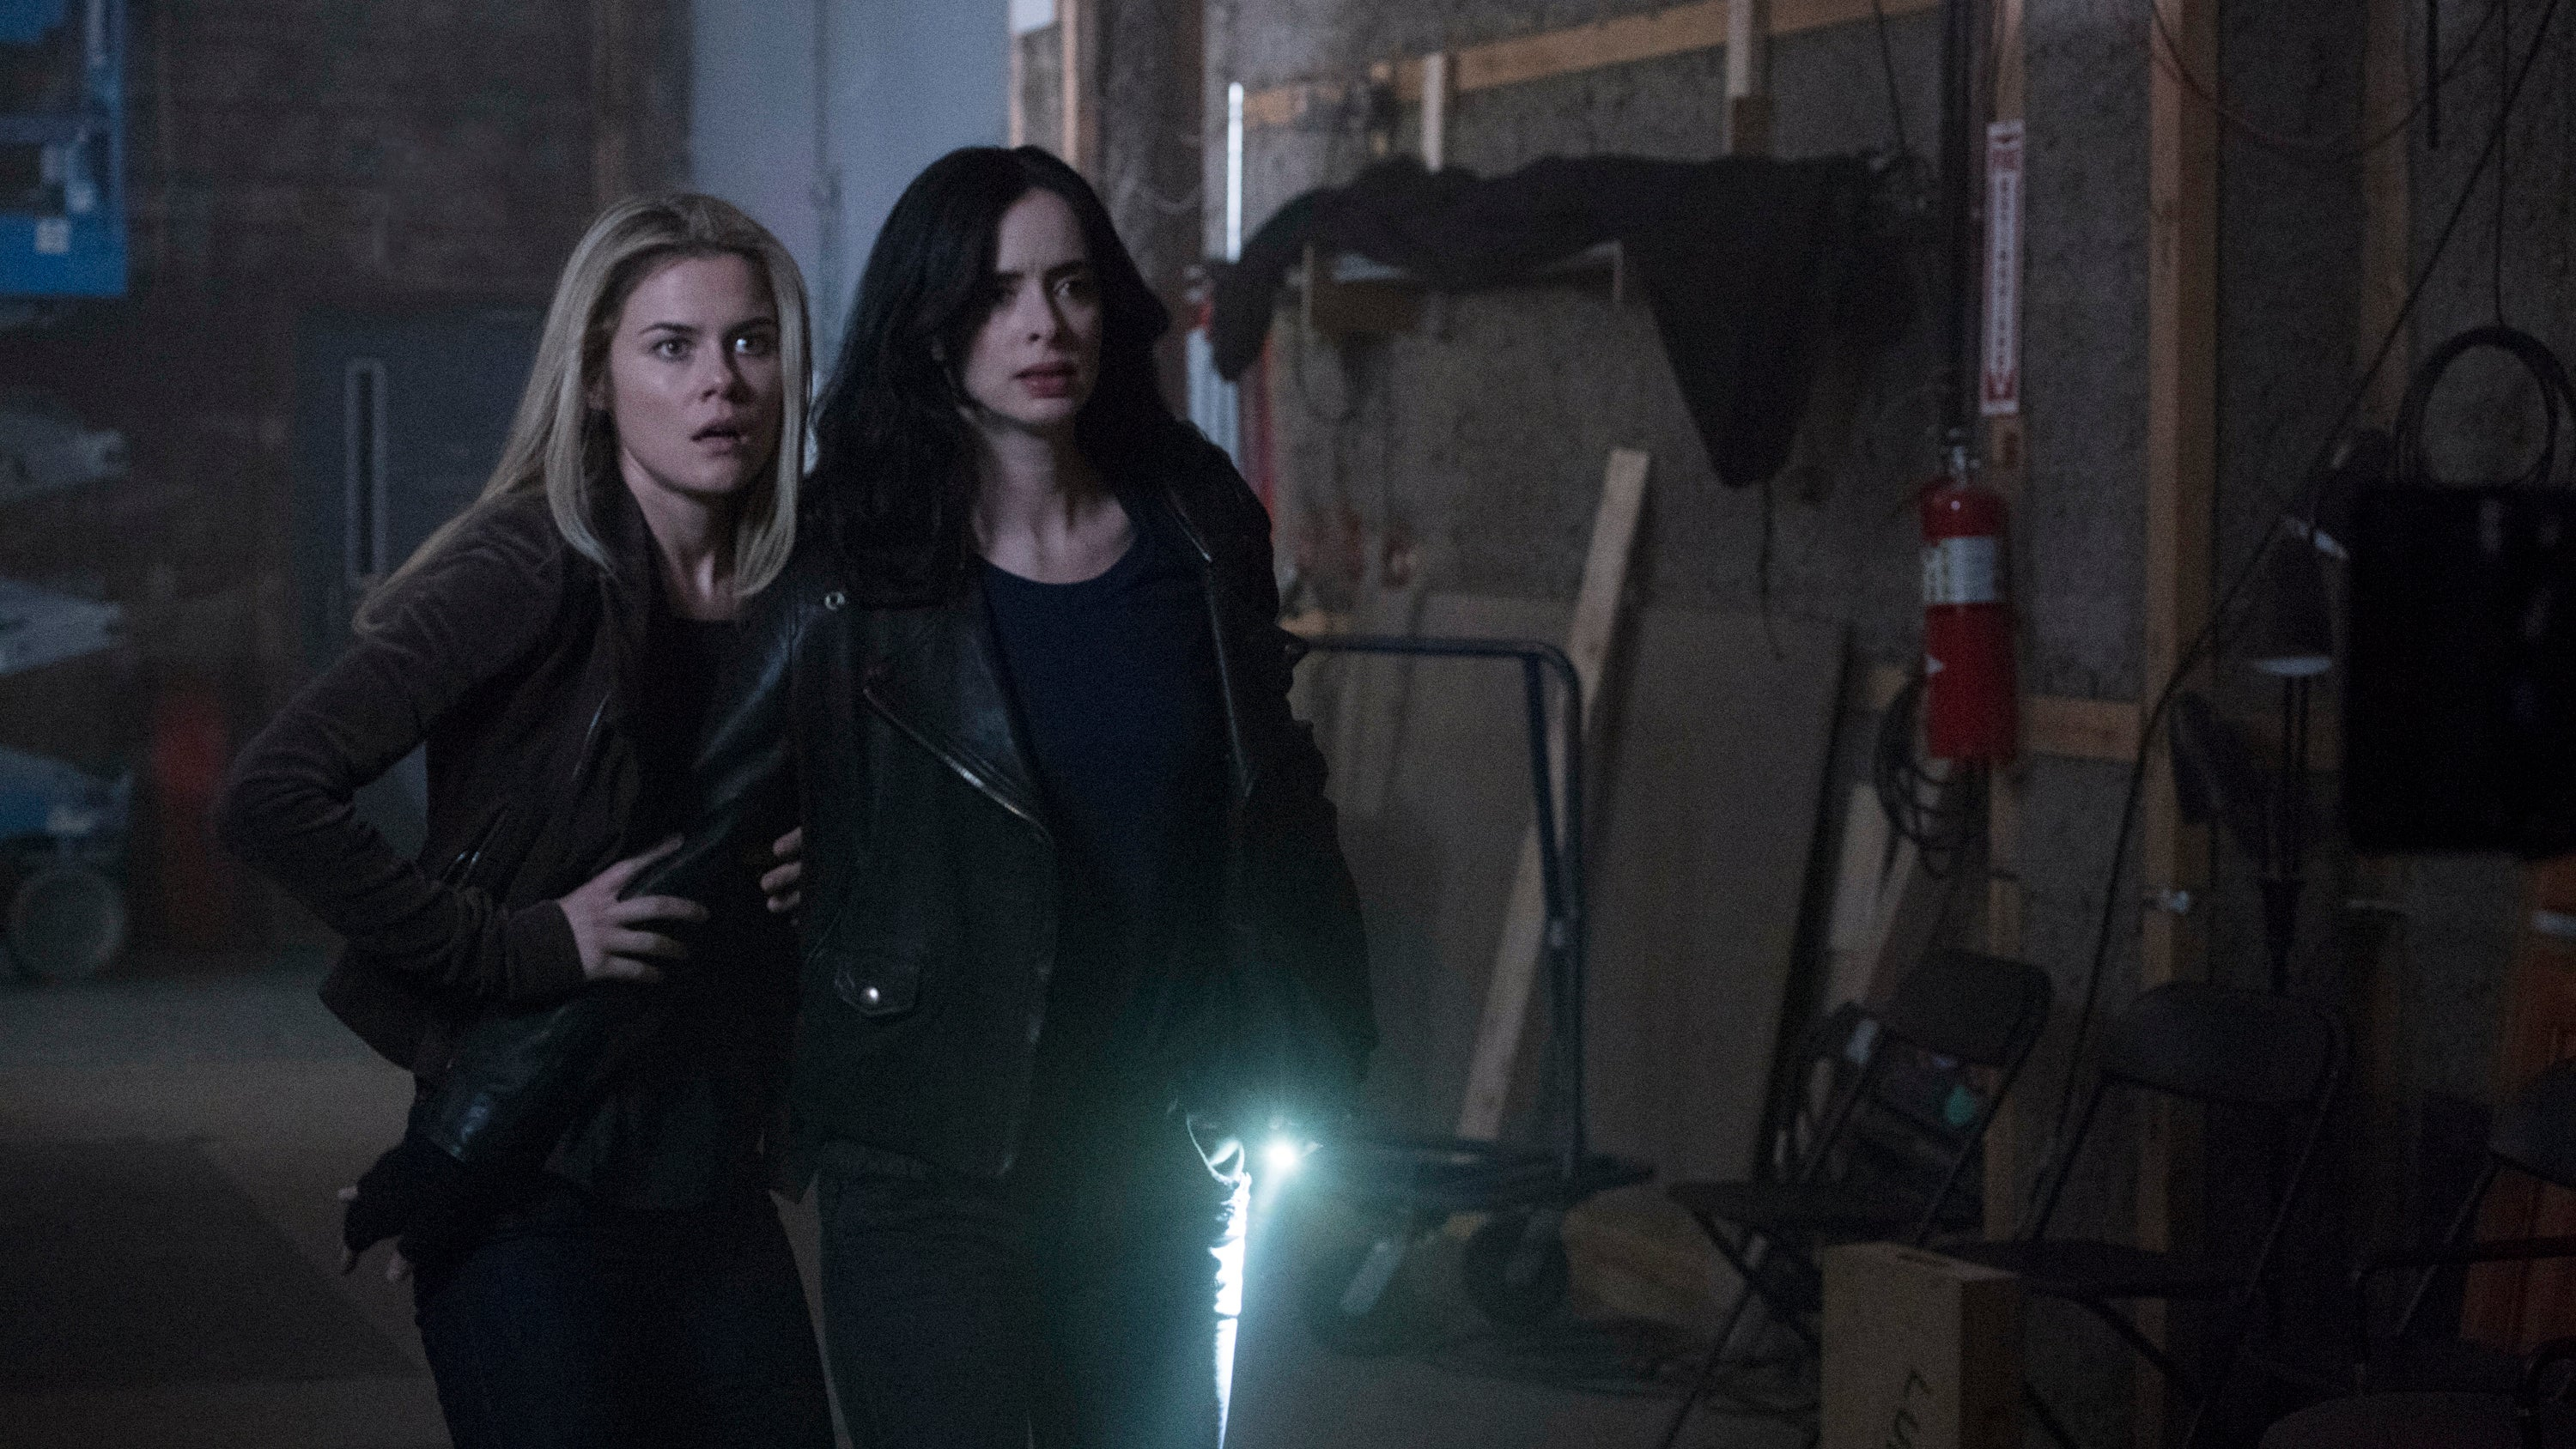 Jessica Jones Featurette Highlights The 'Empowered' Women Bringing The Show To Life